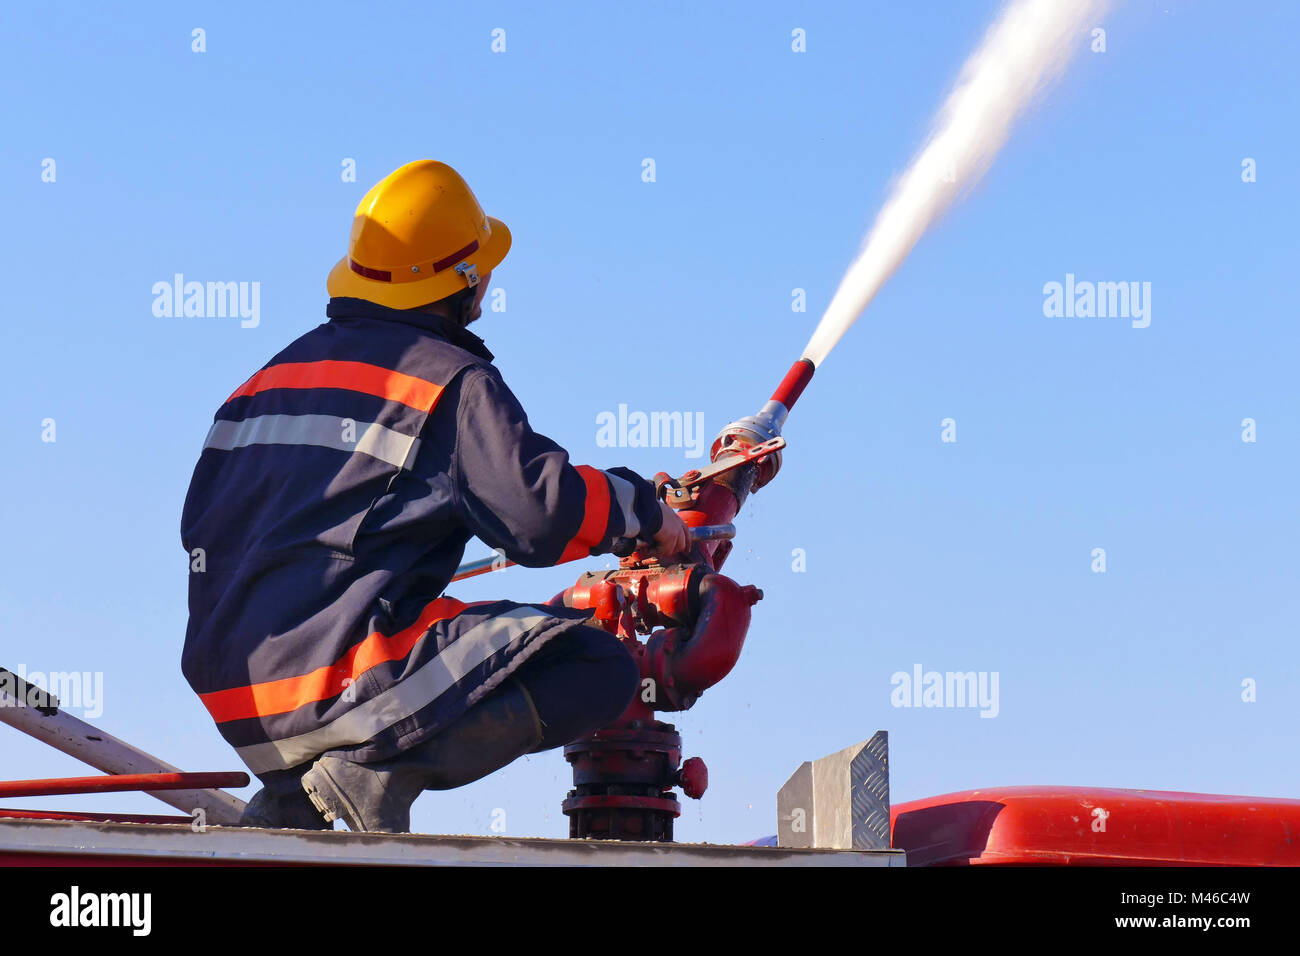 Fire fighting with water cannon - Stock Image